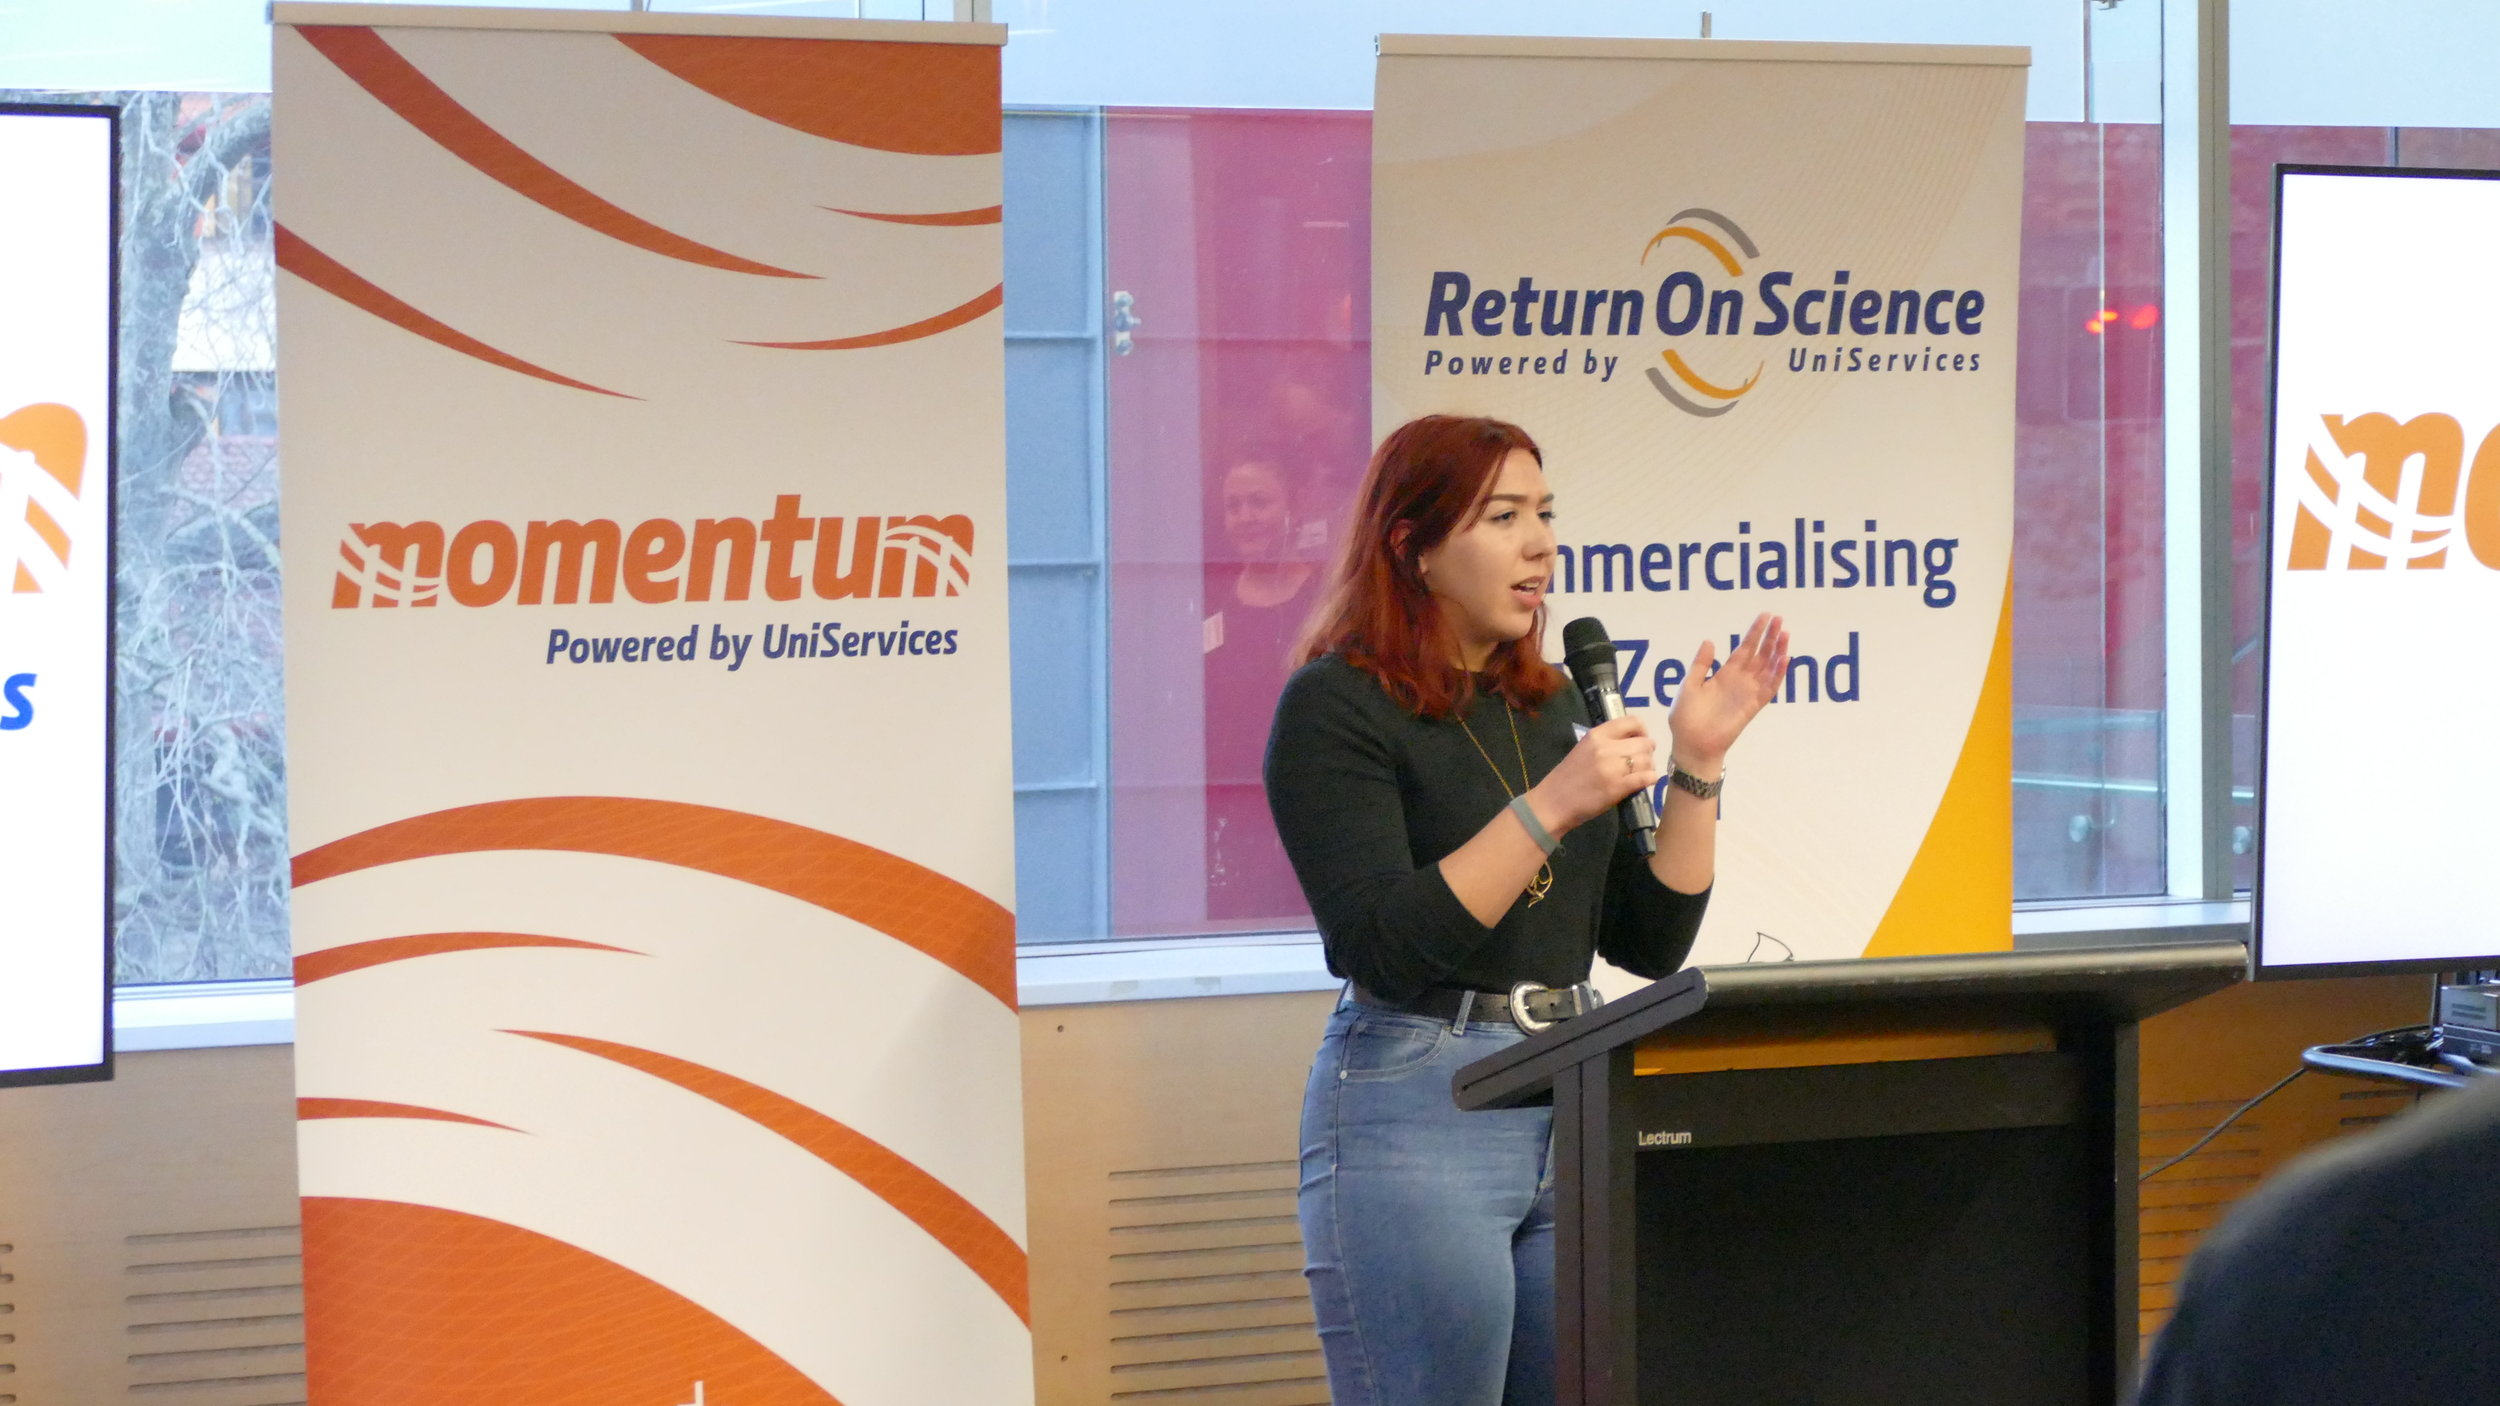 Auckland Momentum - Started two years ago, Auckland Momentum boasts a diverse range of committee members ranging from Auckland University, AUT University and a number of highly successful innovators and entrepreneurs.